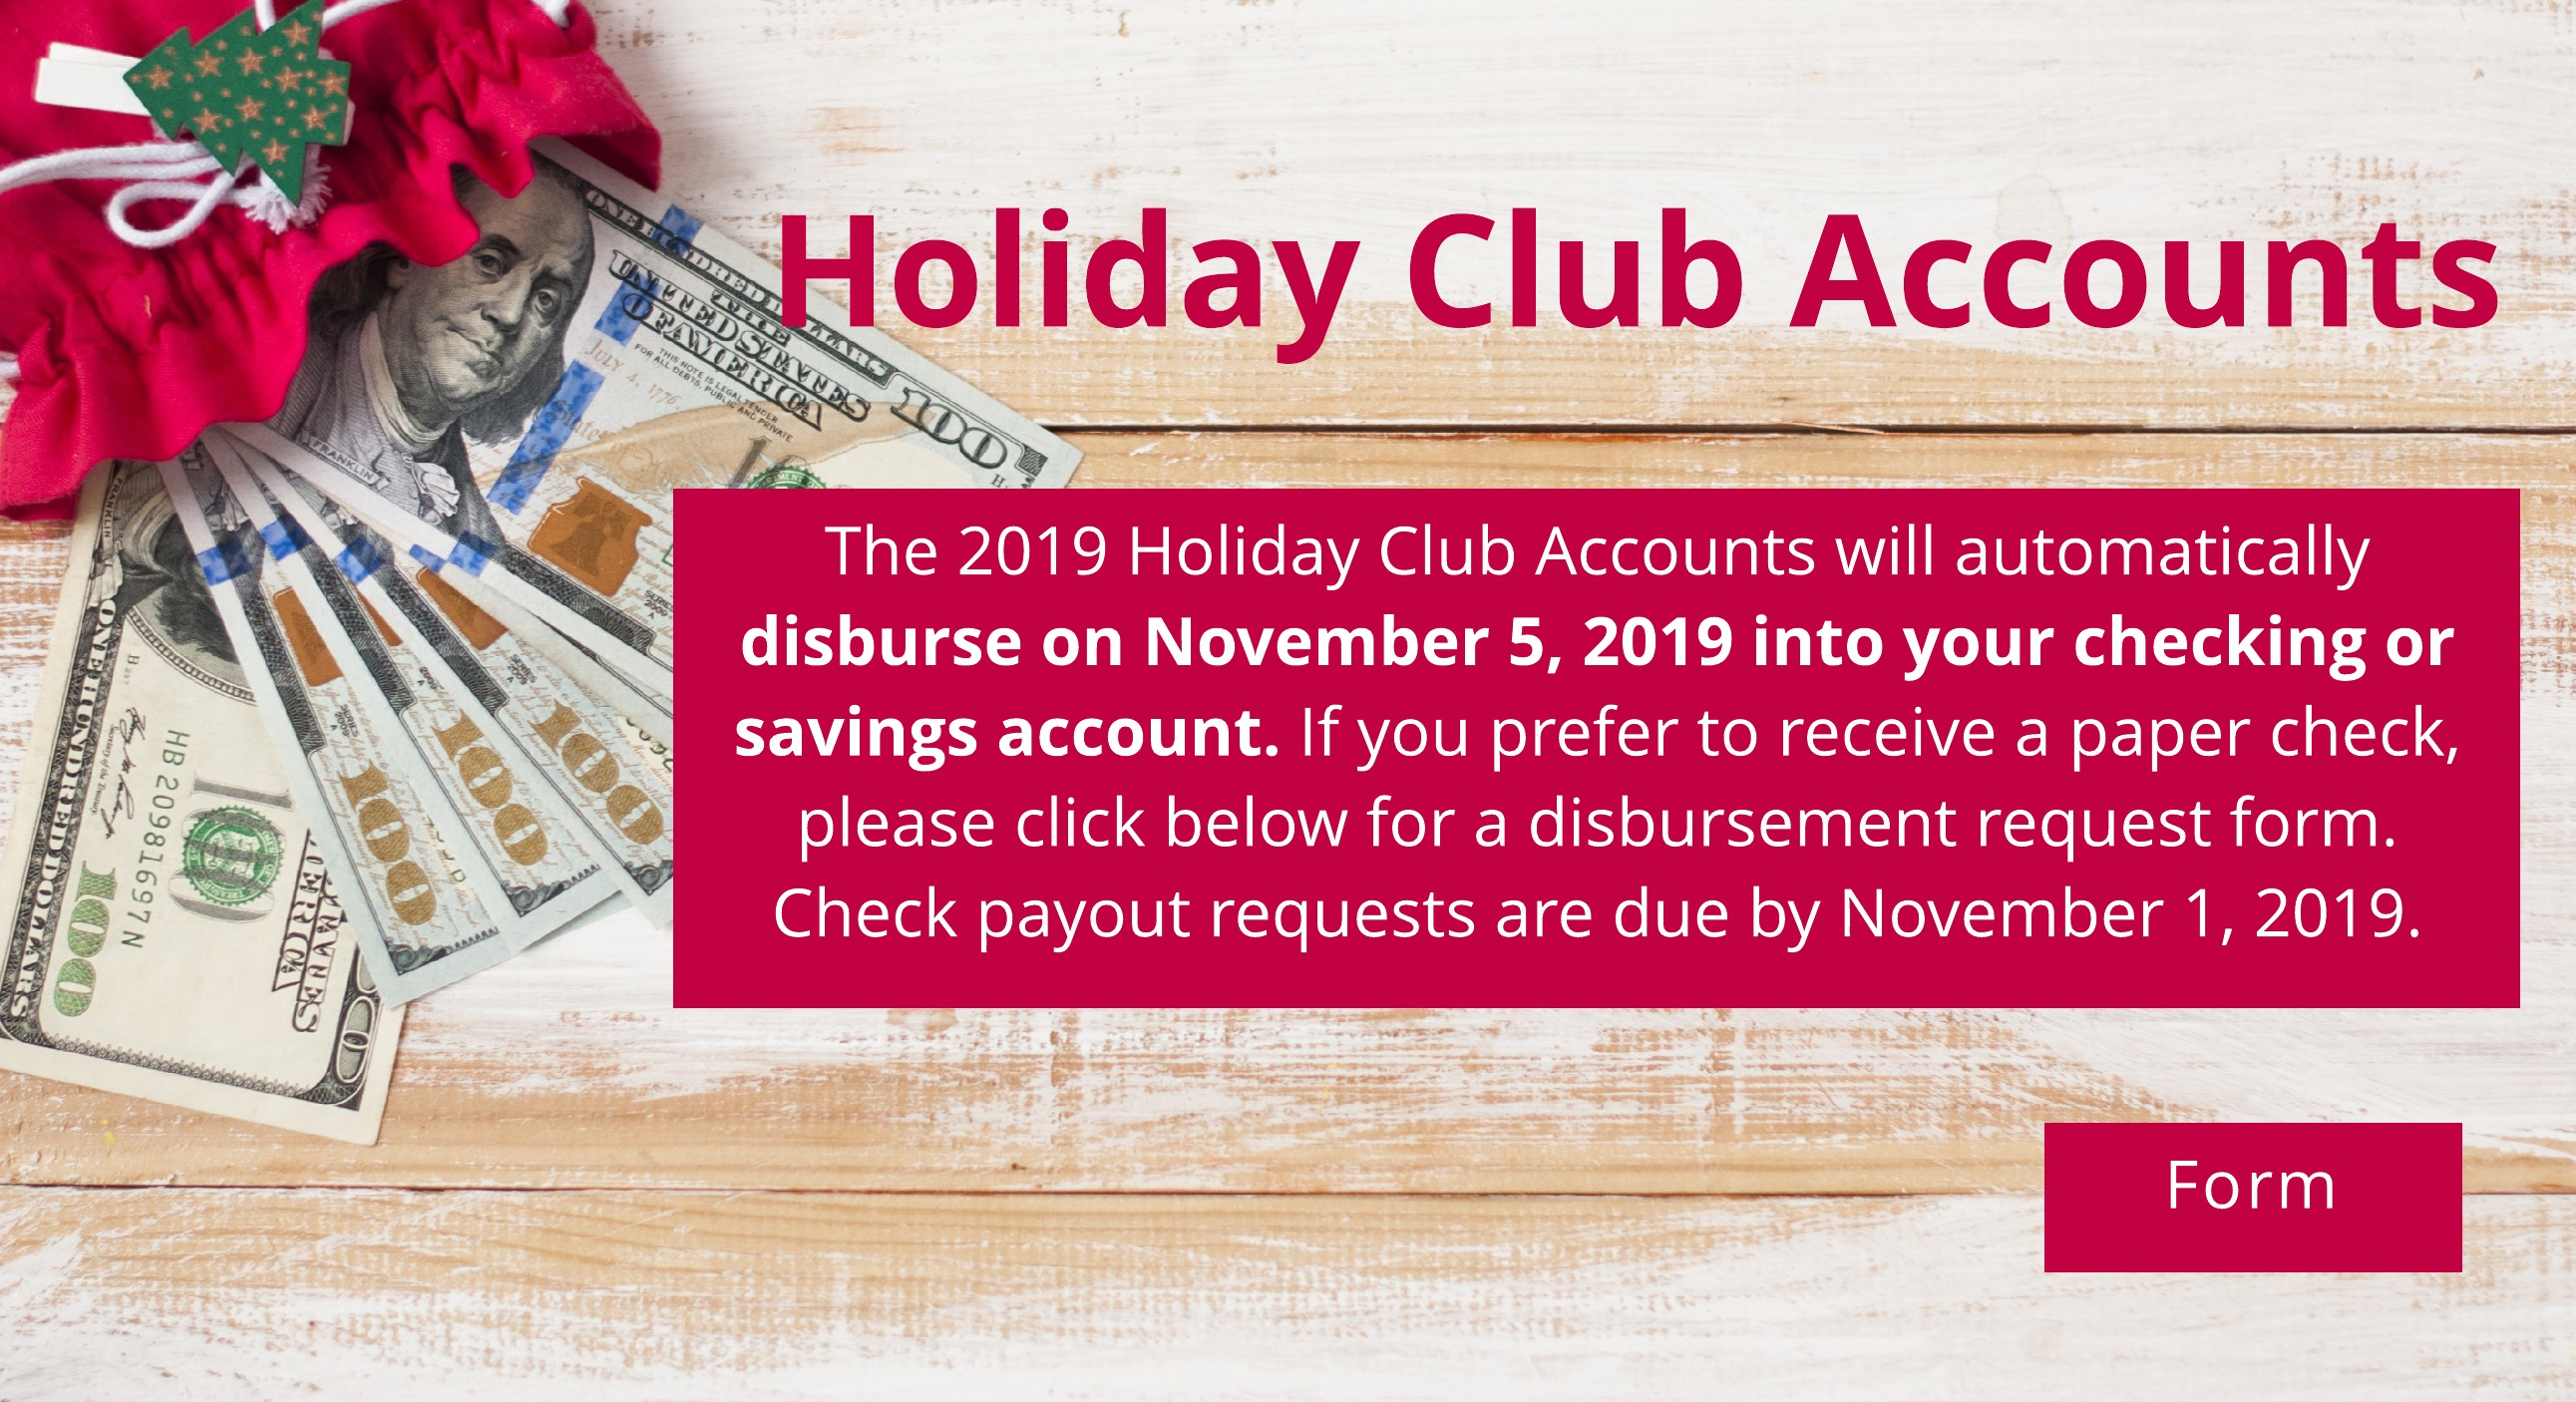 Holiday Club Accounts. Click to learn more